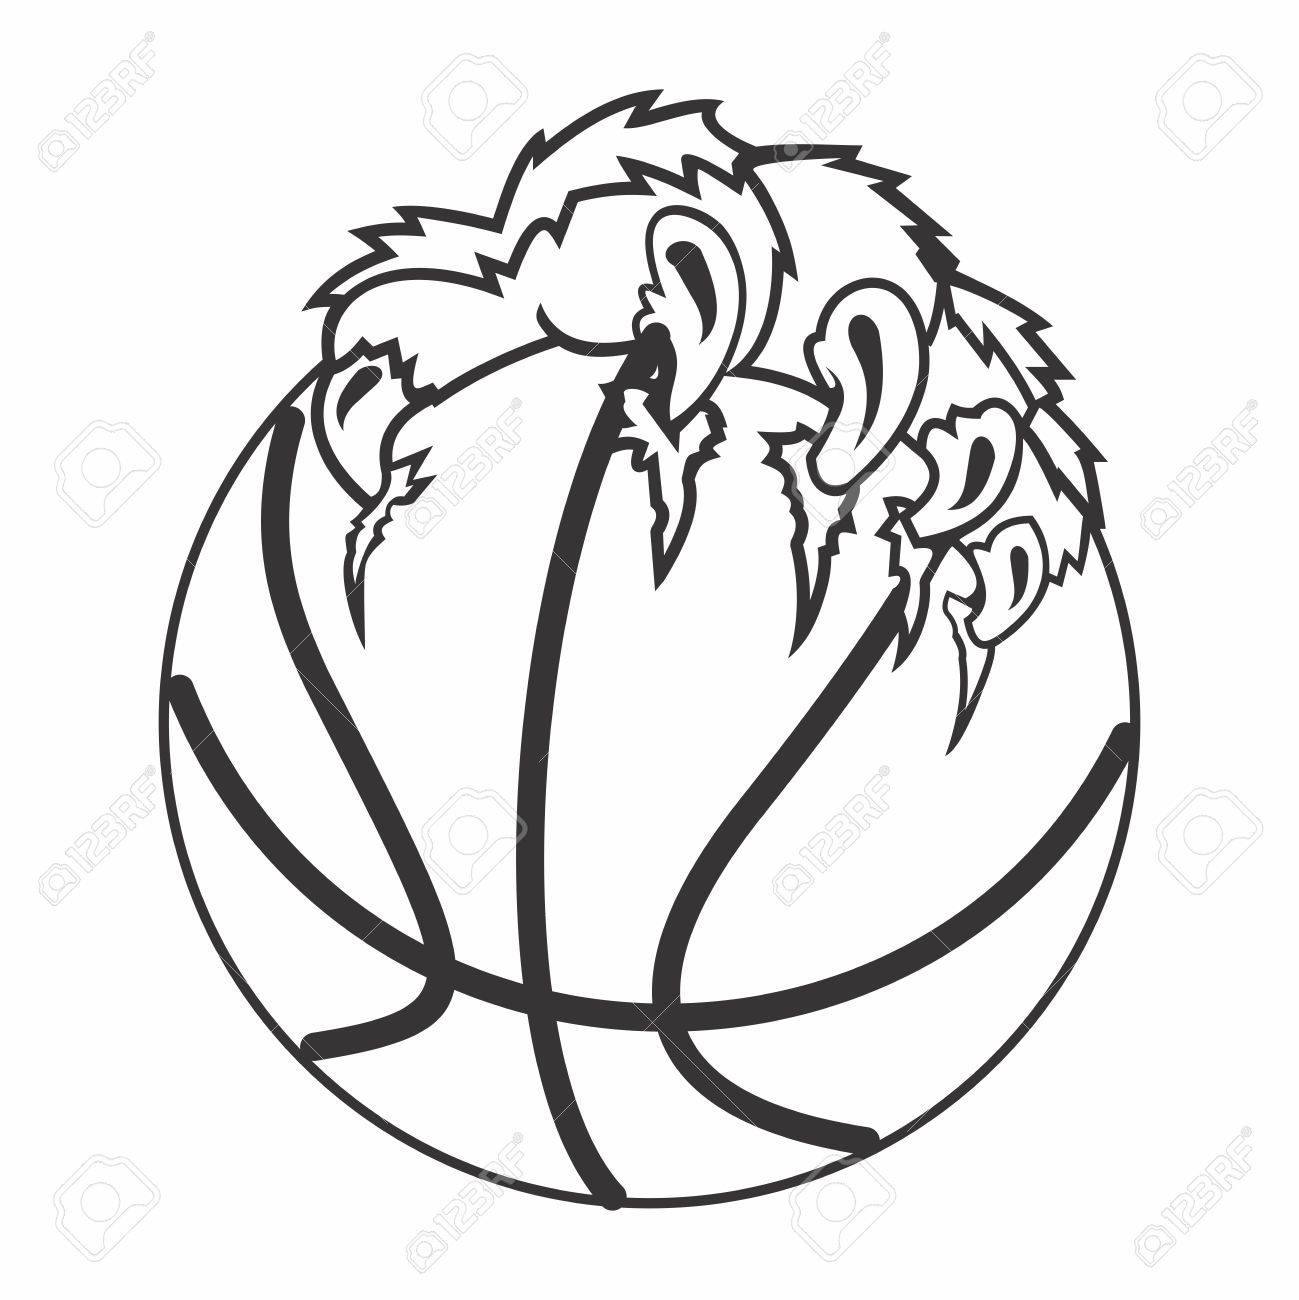 1299x1300 Vector Basketball And Claw Illustration, Isolated On White